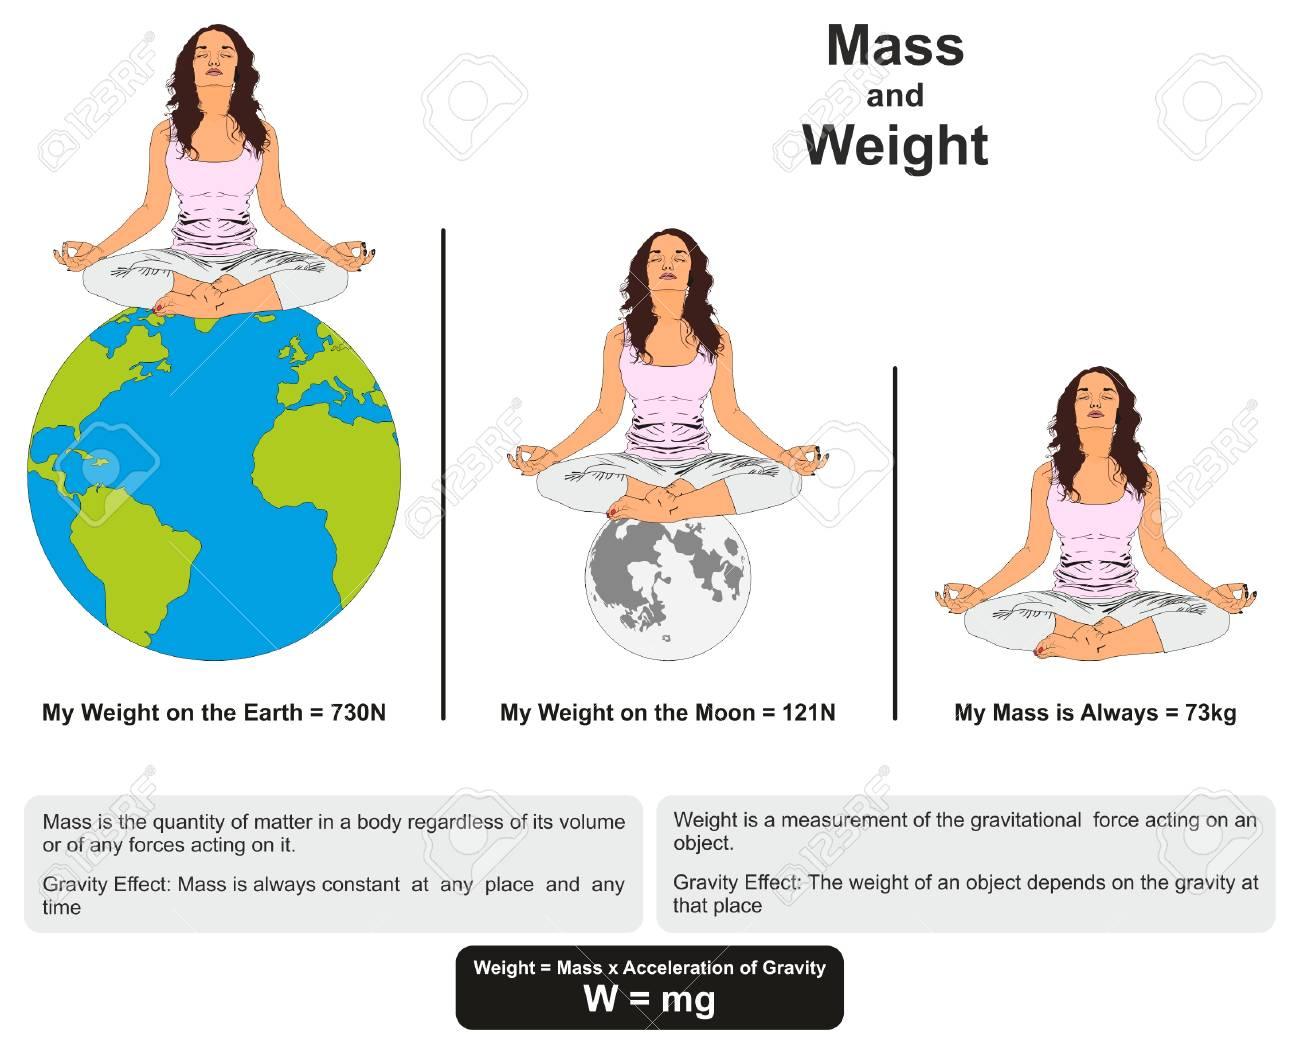 Mass and weight physics lesson infographic diagram showing mass and weight physics lesson infographic diagram showing difference between them with example on earth and ccuart Images